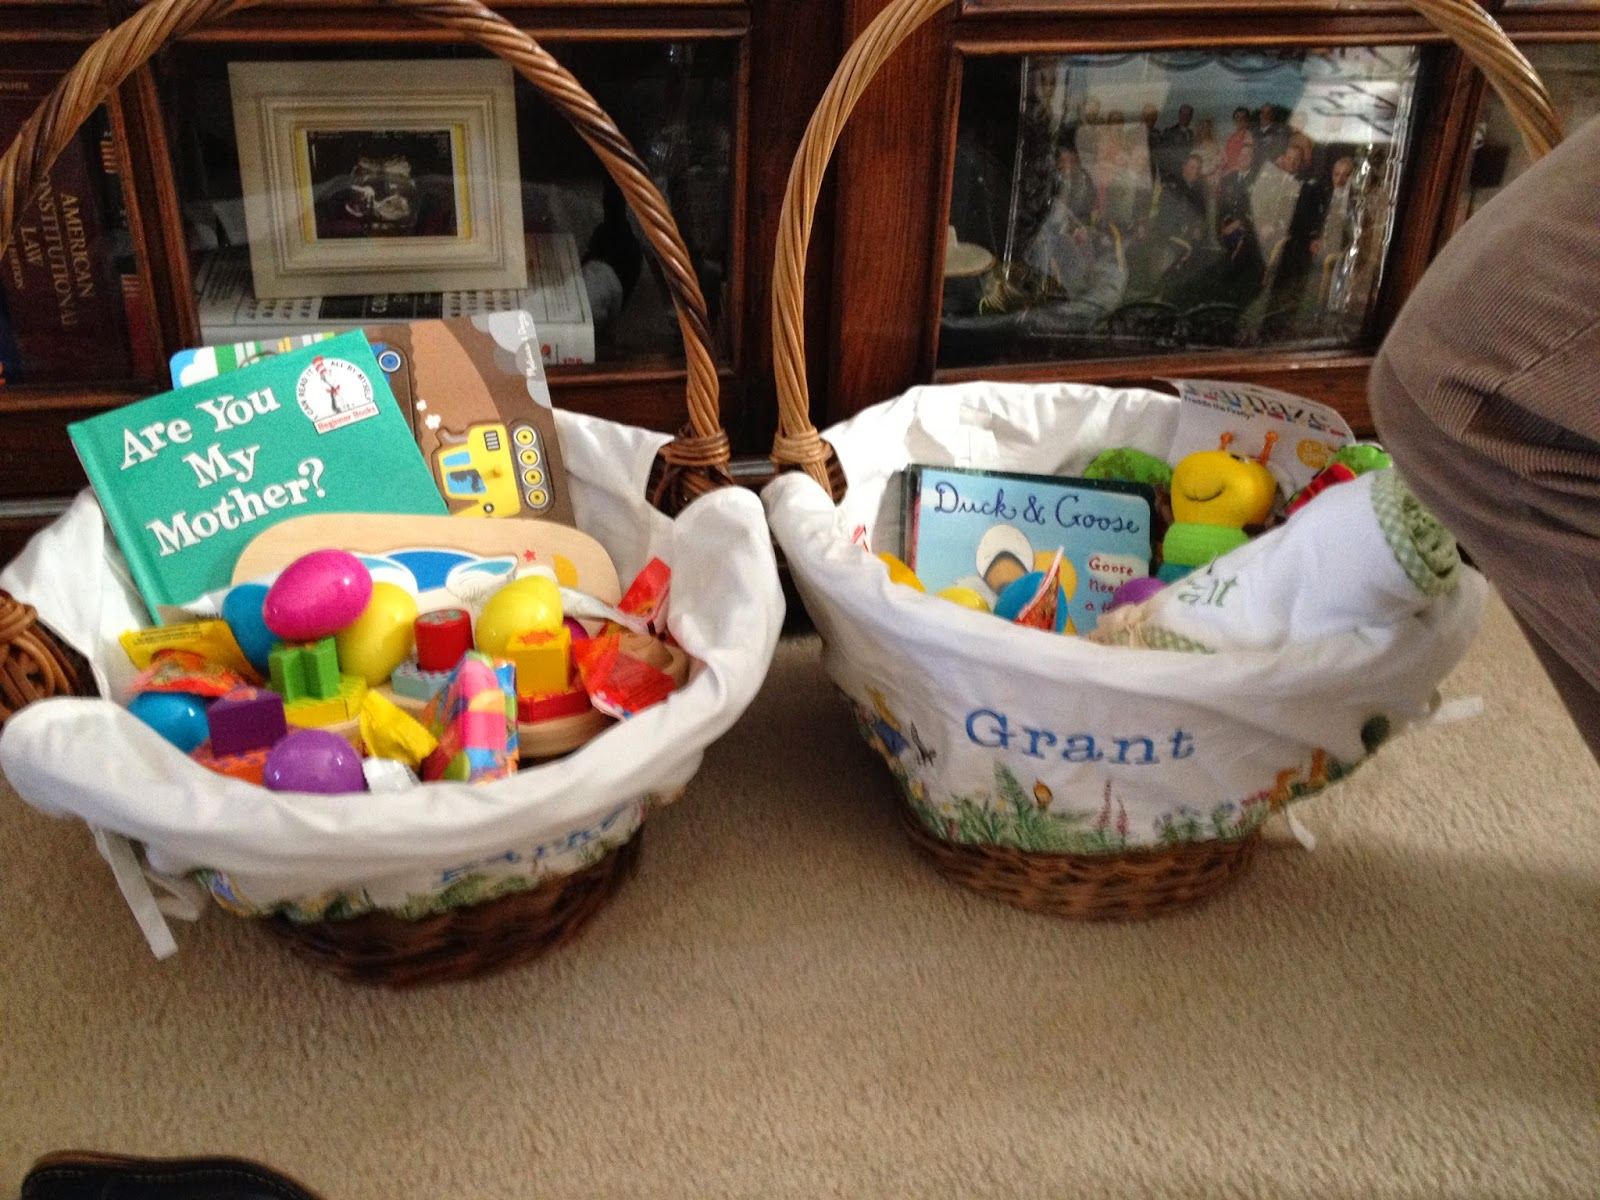 Suddenly snowden our happy easter he loved going through his basket stopping to play or read each gift after he had seen everything in his basket he helped baby grant open his basket too negle Image collections